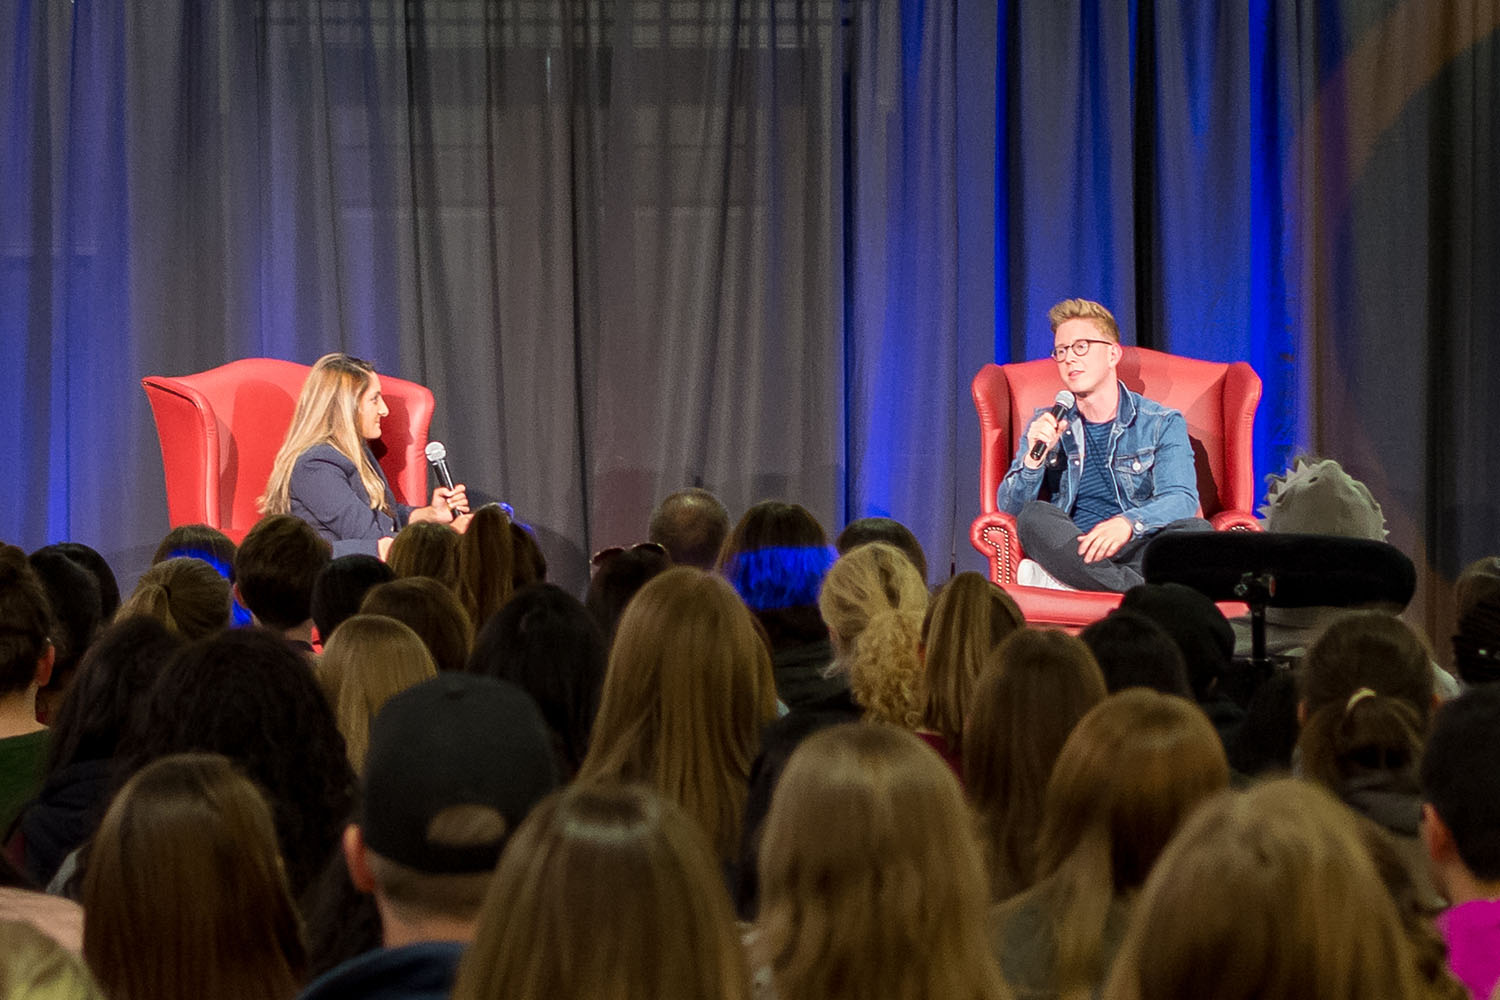 YouTube and podcast personality Tyler Oakley speaks to the campus community in the Illini Union I-Rooms on Thursday, Nov. 9, 2017 at 7 p.m. In this free event, Tyler spoke about everything from his coming out story and current activism to his experience meeting the Obama family.